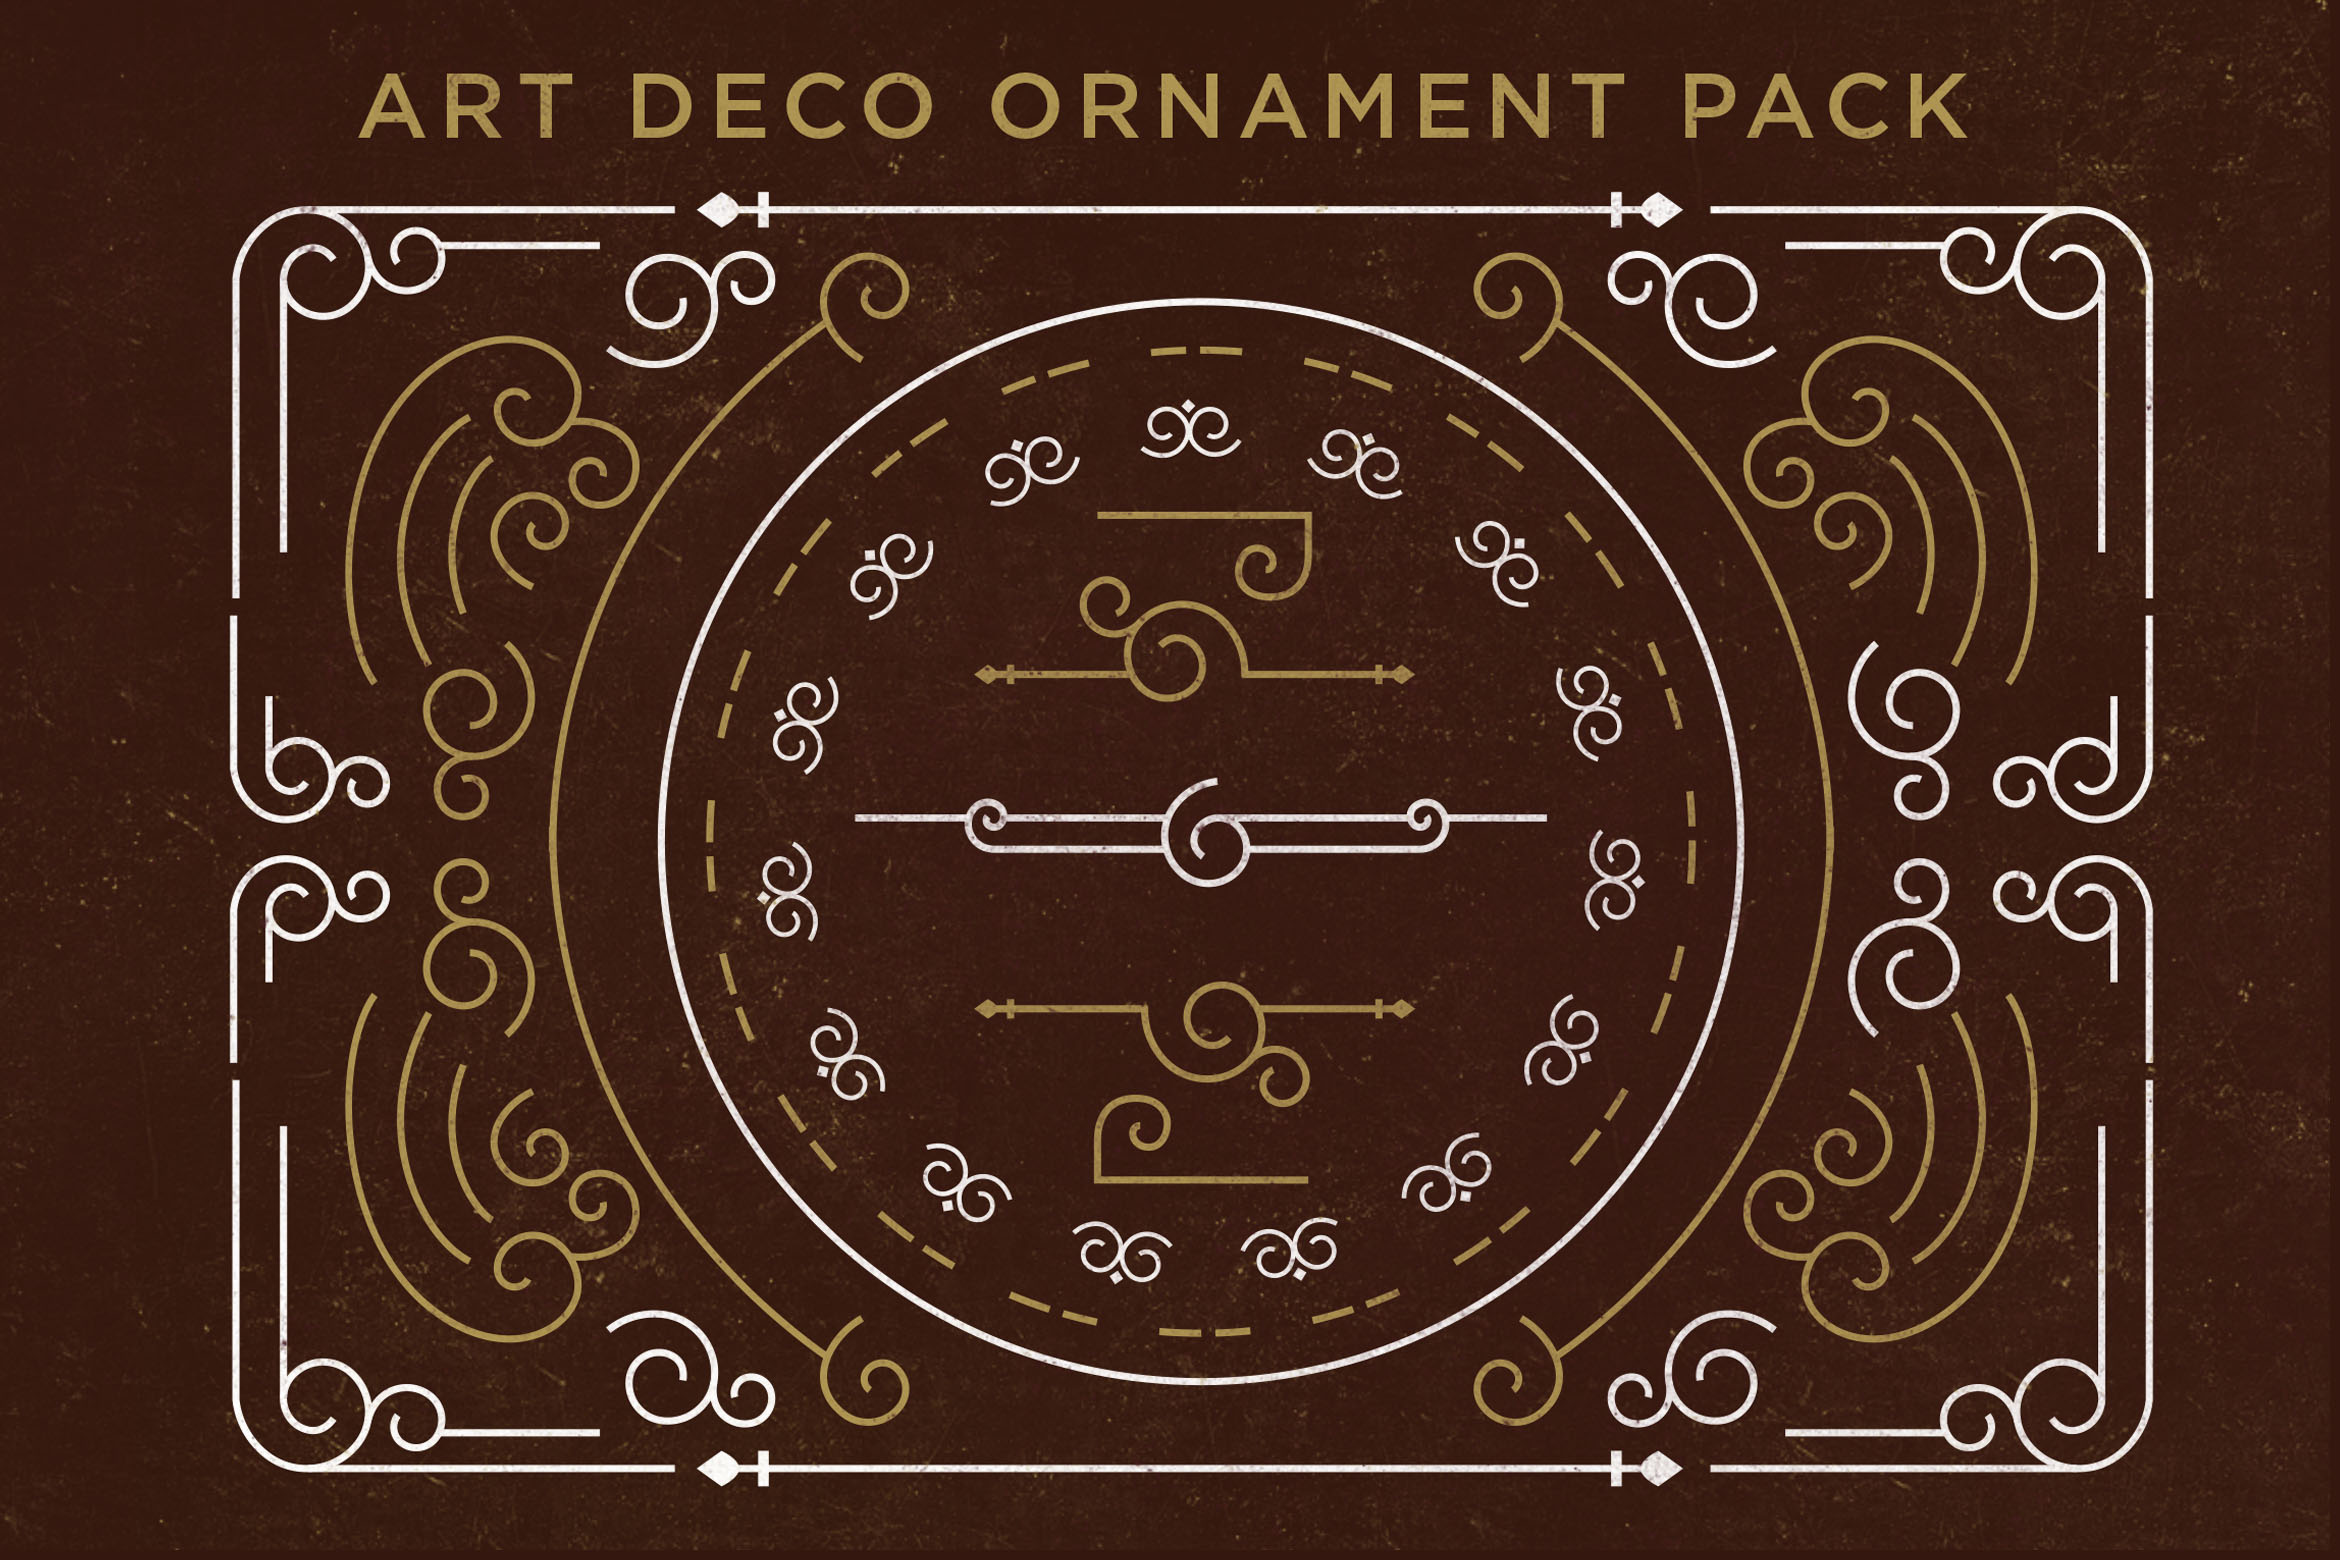 Art Deco Ornament Pack Graphic Objects By storictype - Image 1